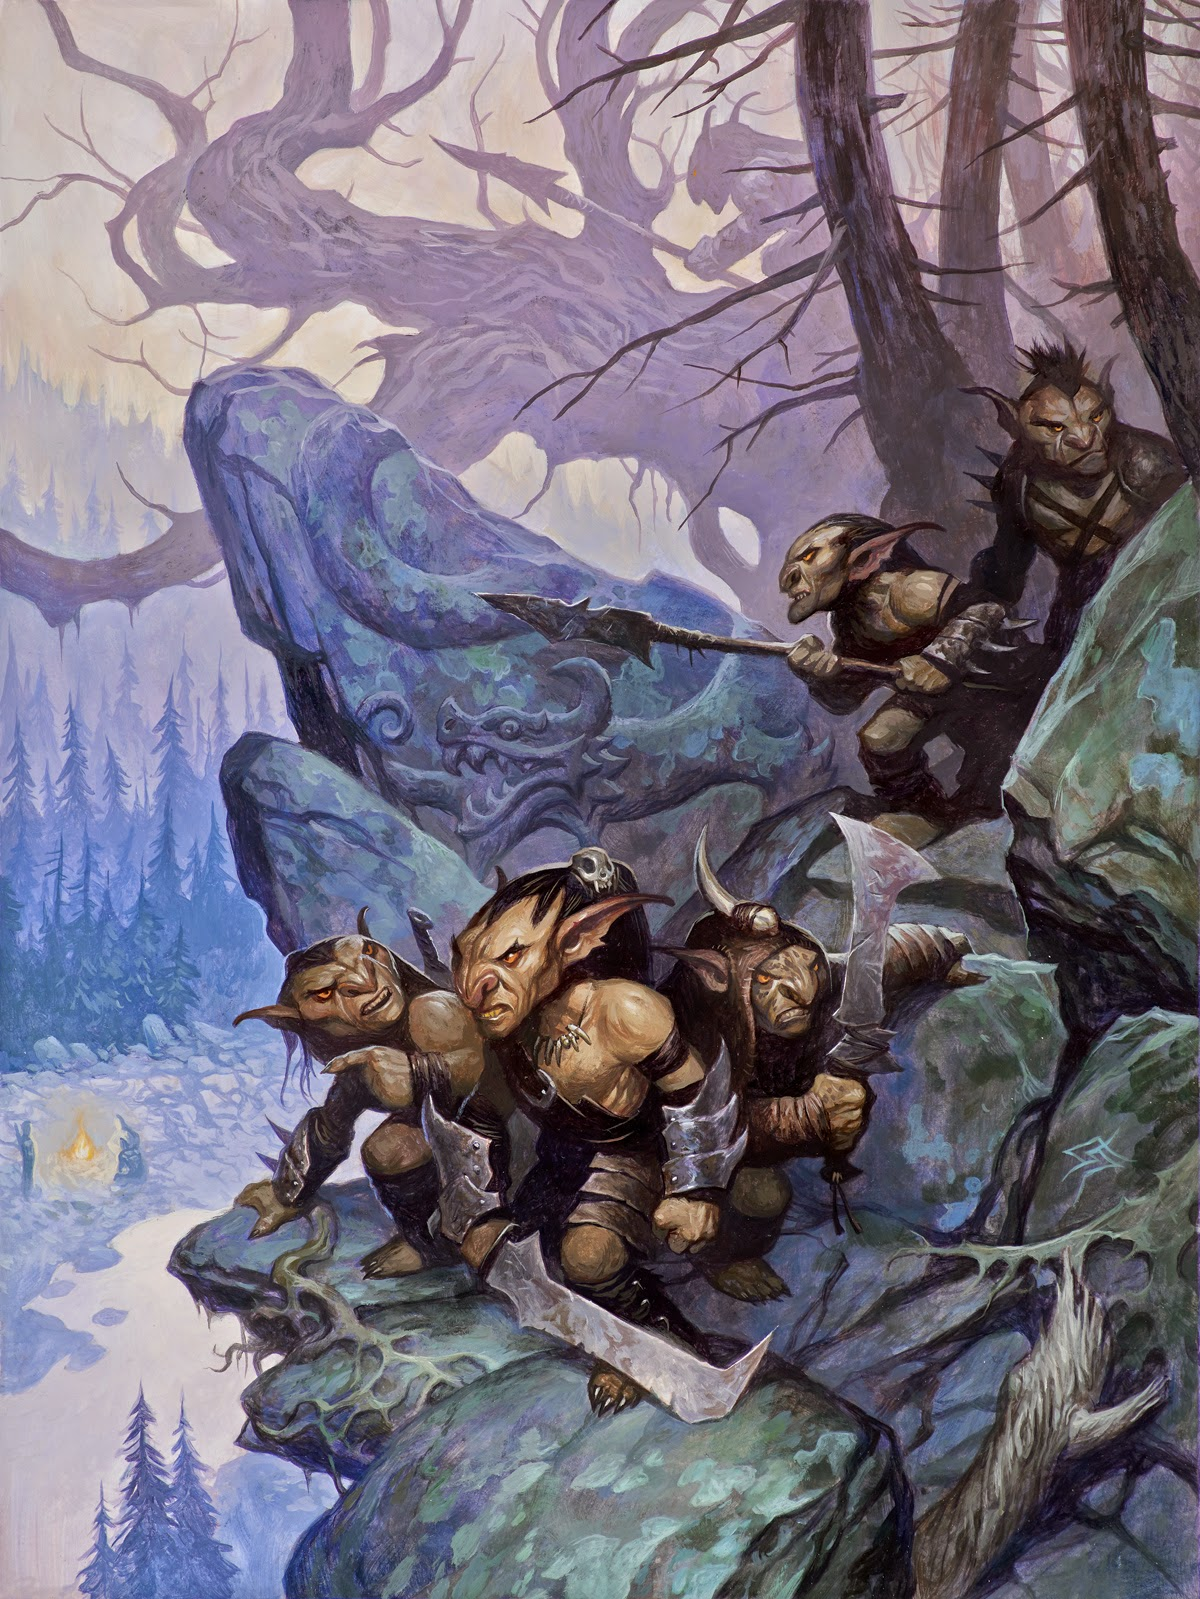 Pact of the Tome: Getting Started with the Starter Set, Part